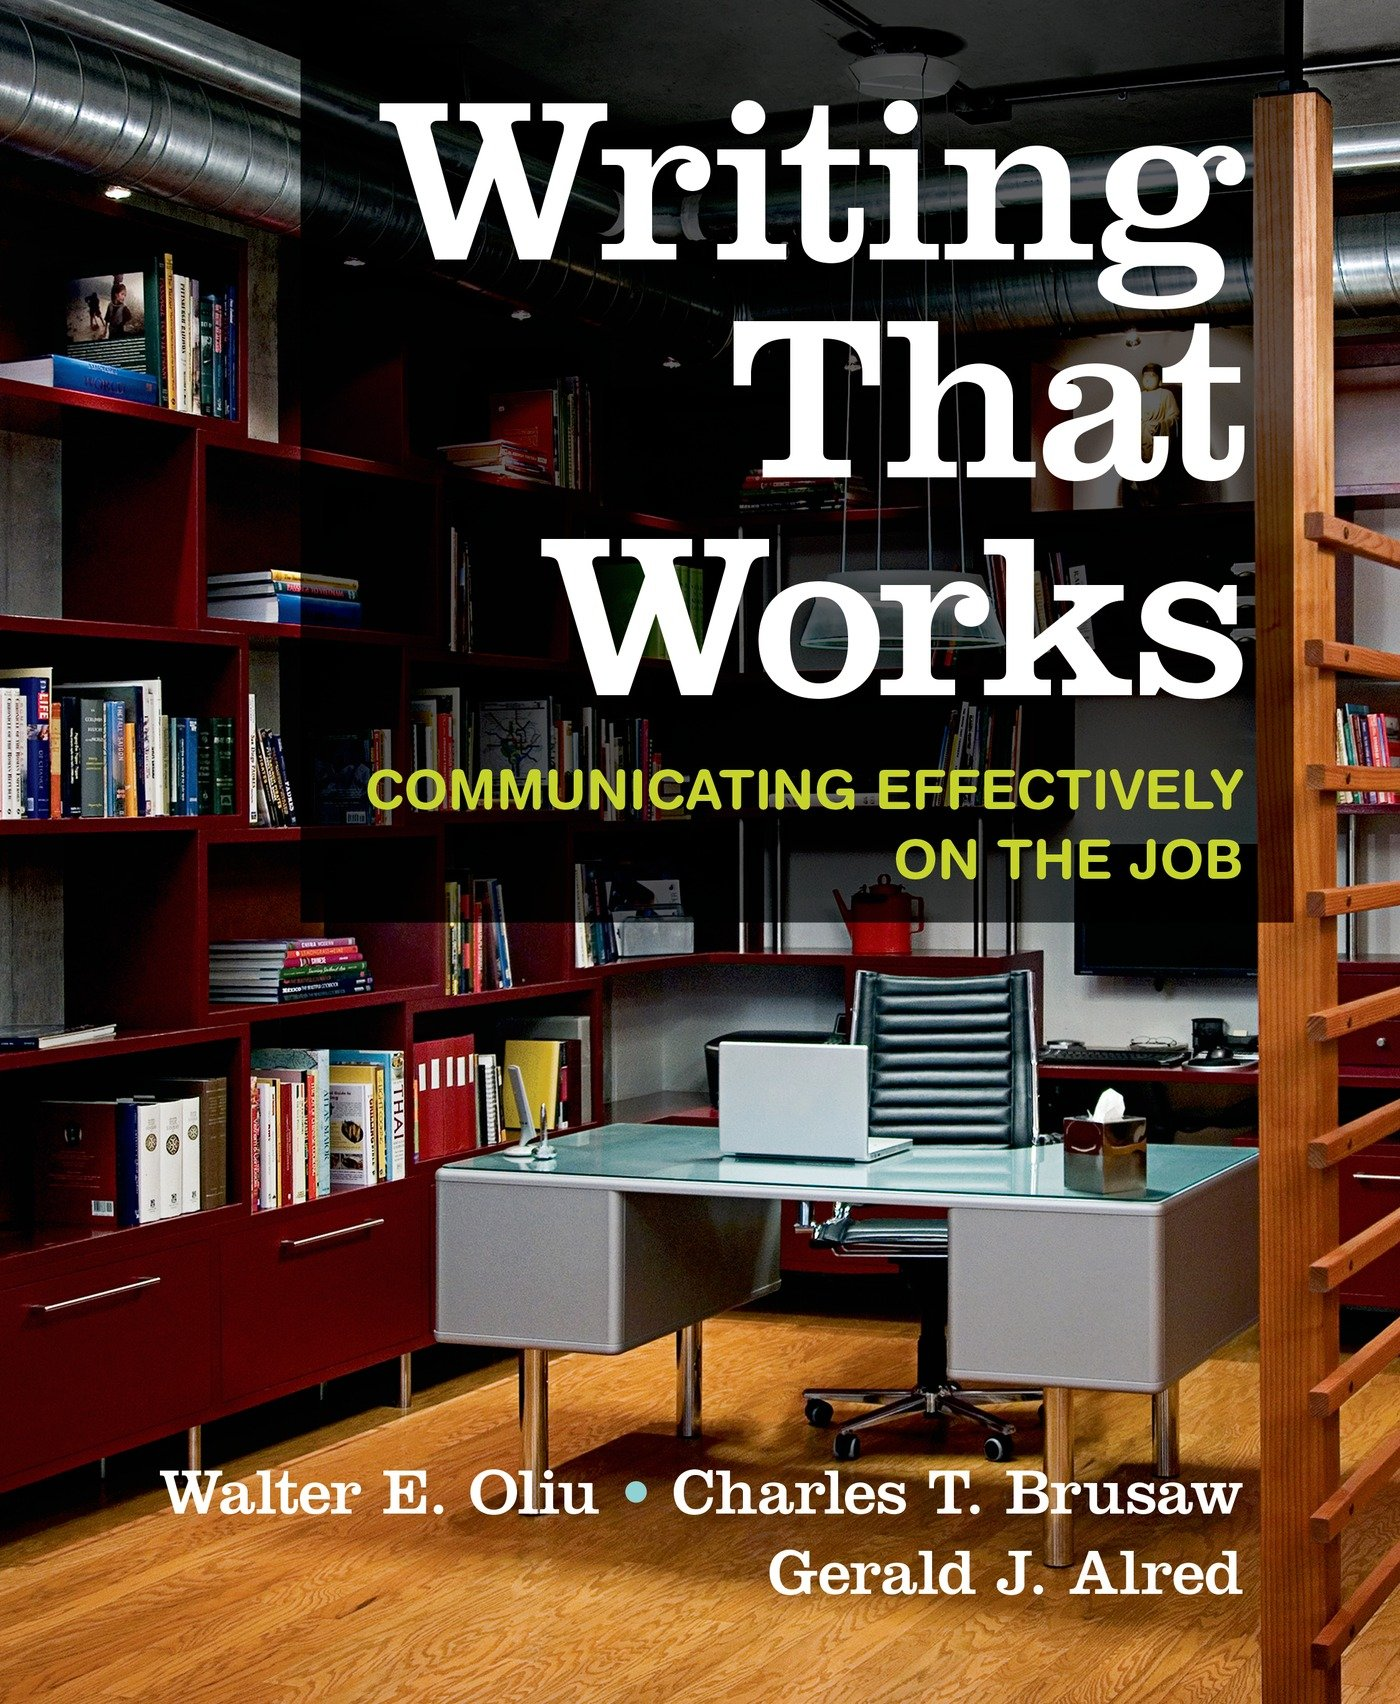 Writing That Works: Communicating Effectively on the Job by Bedford/St. Martin's